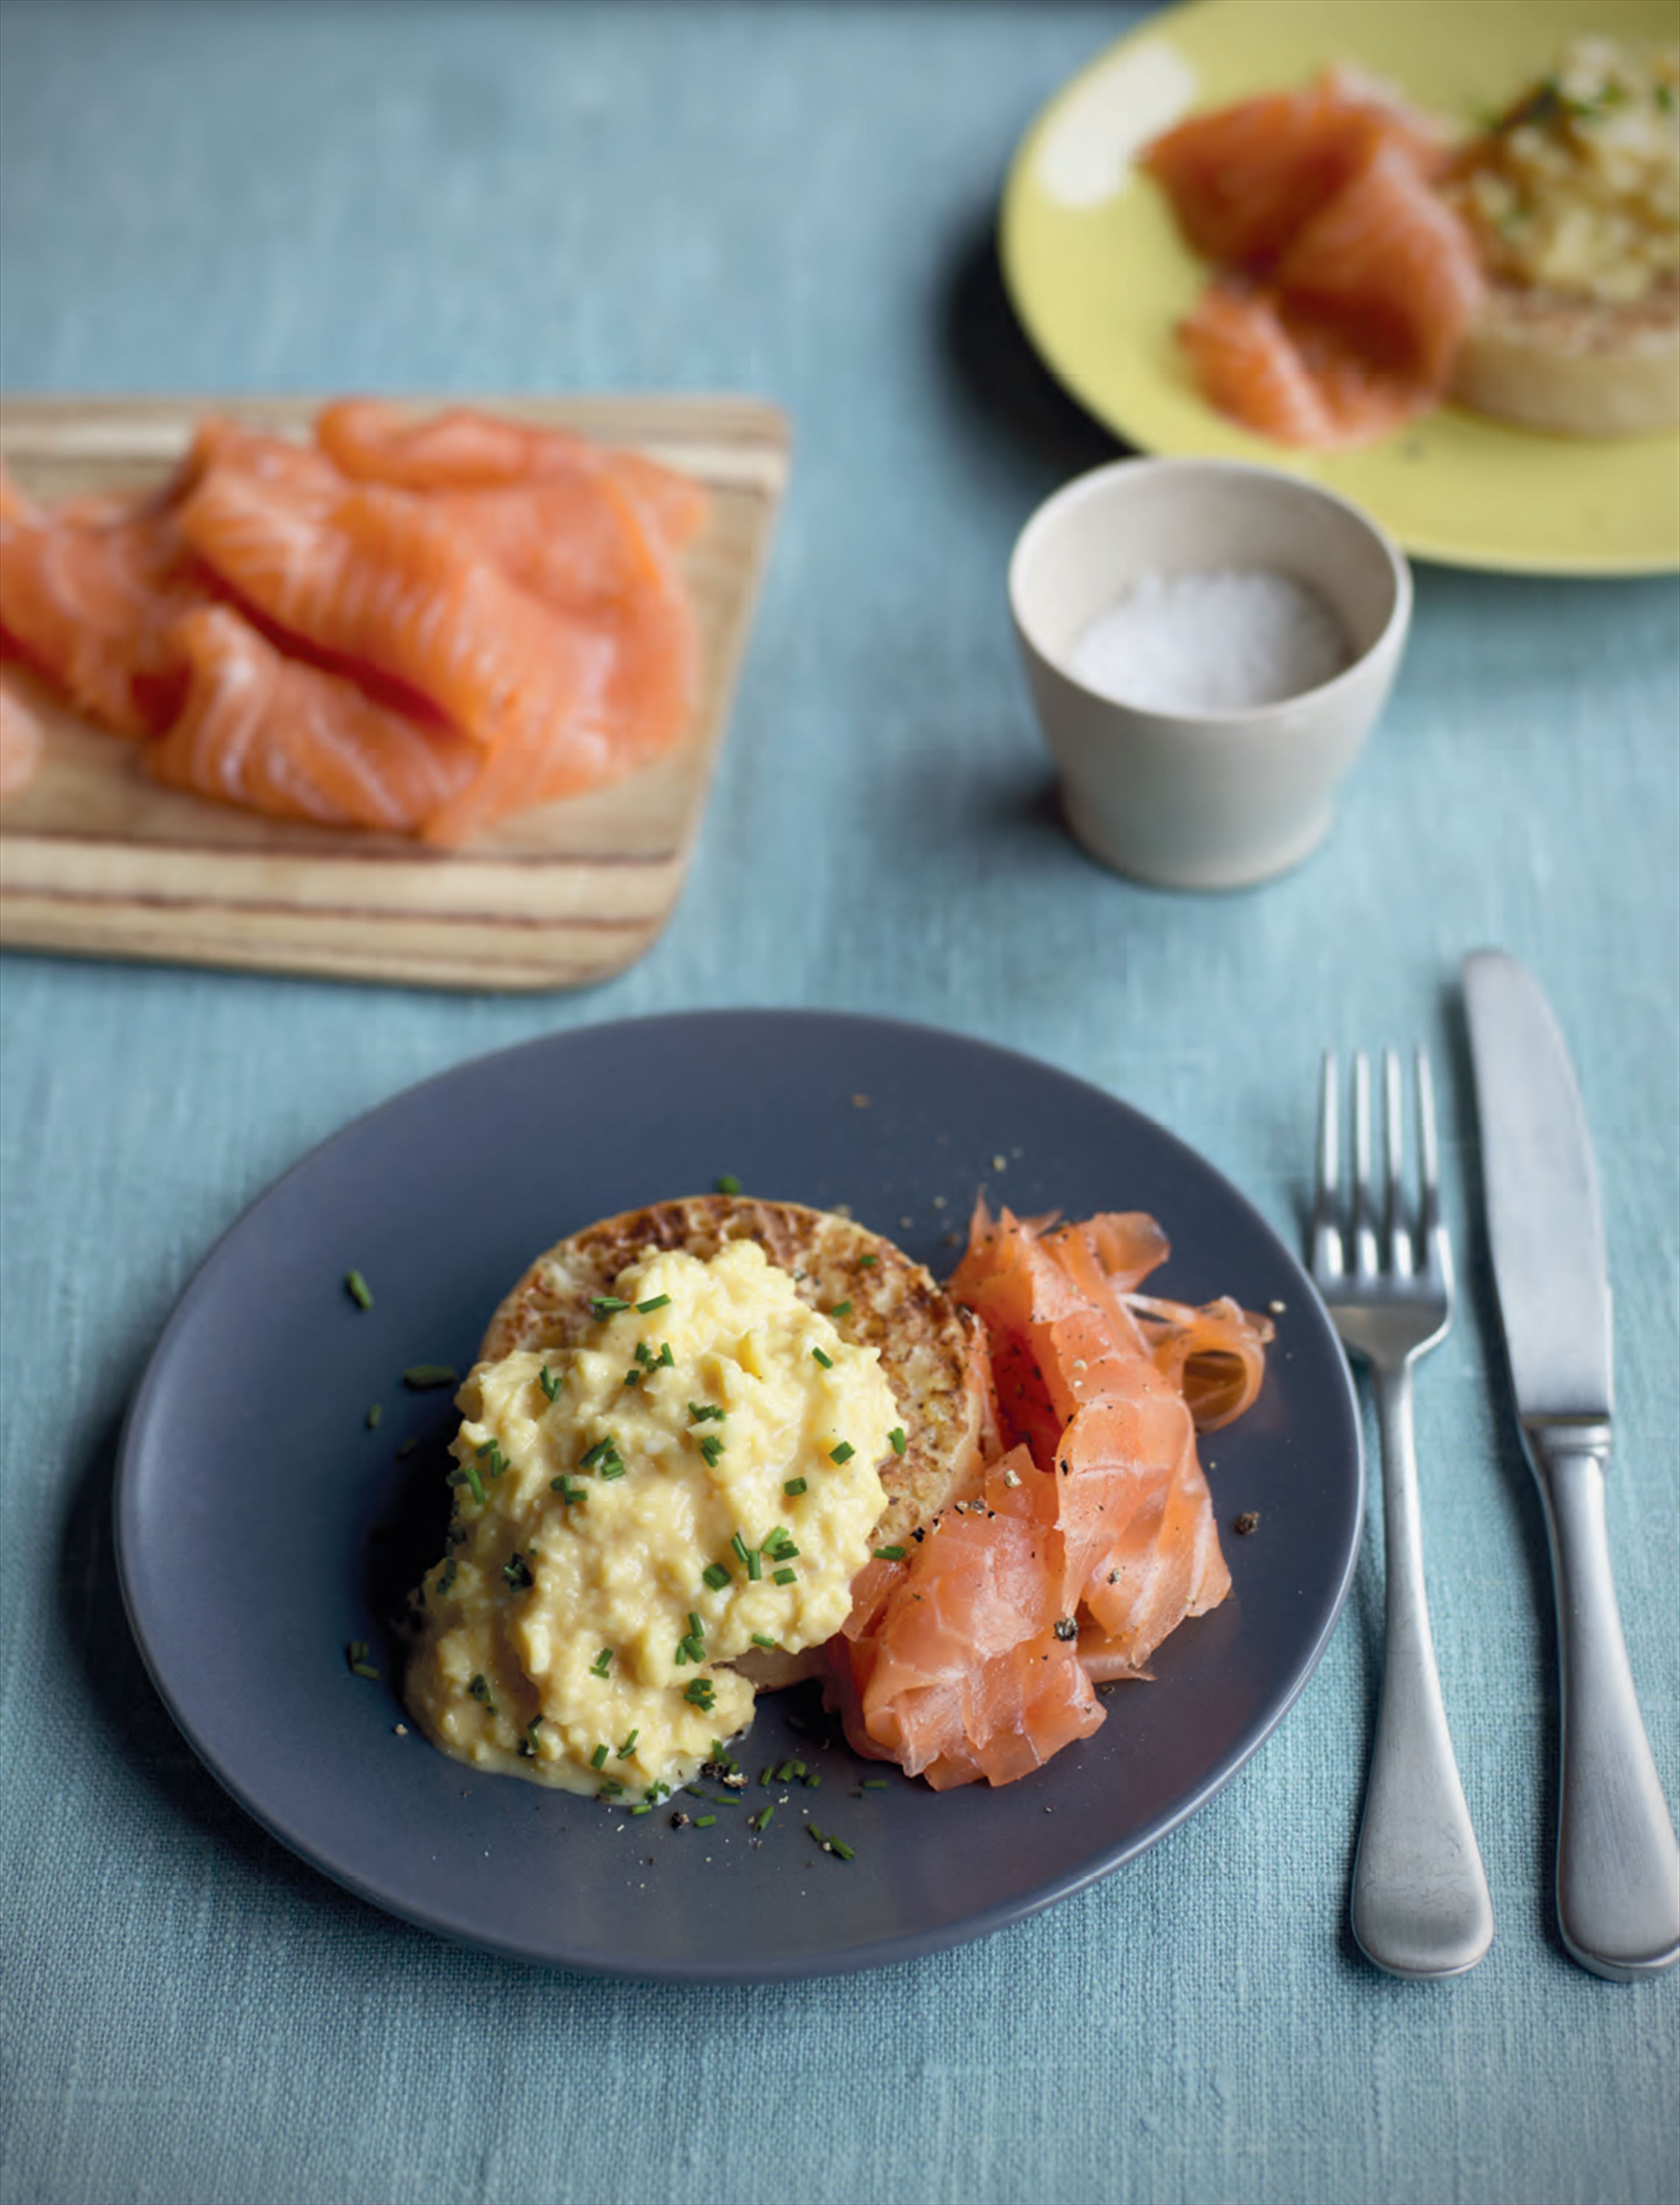 Creamy scrambled eggs with smoked salmon & buttered crumpets